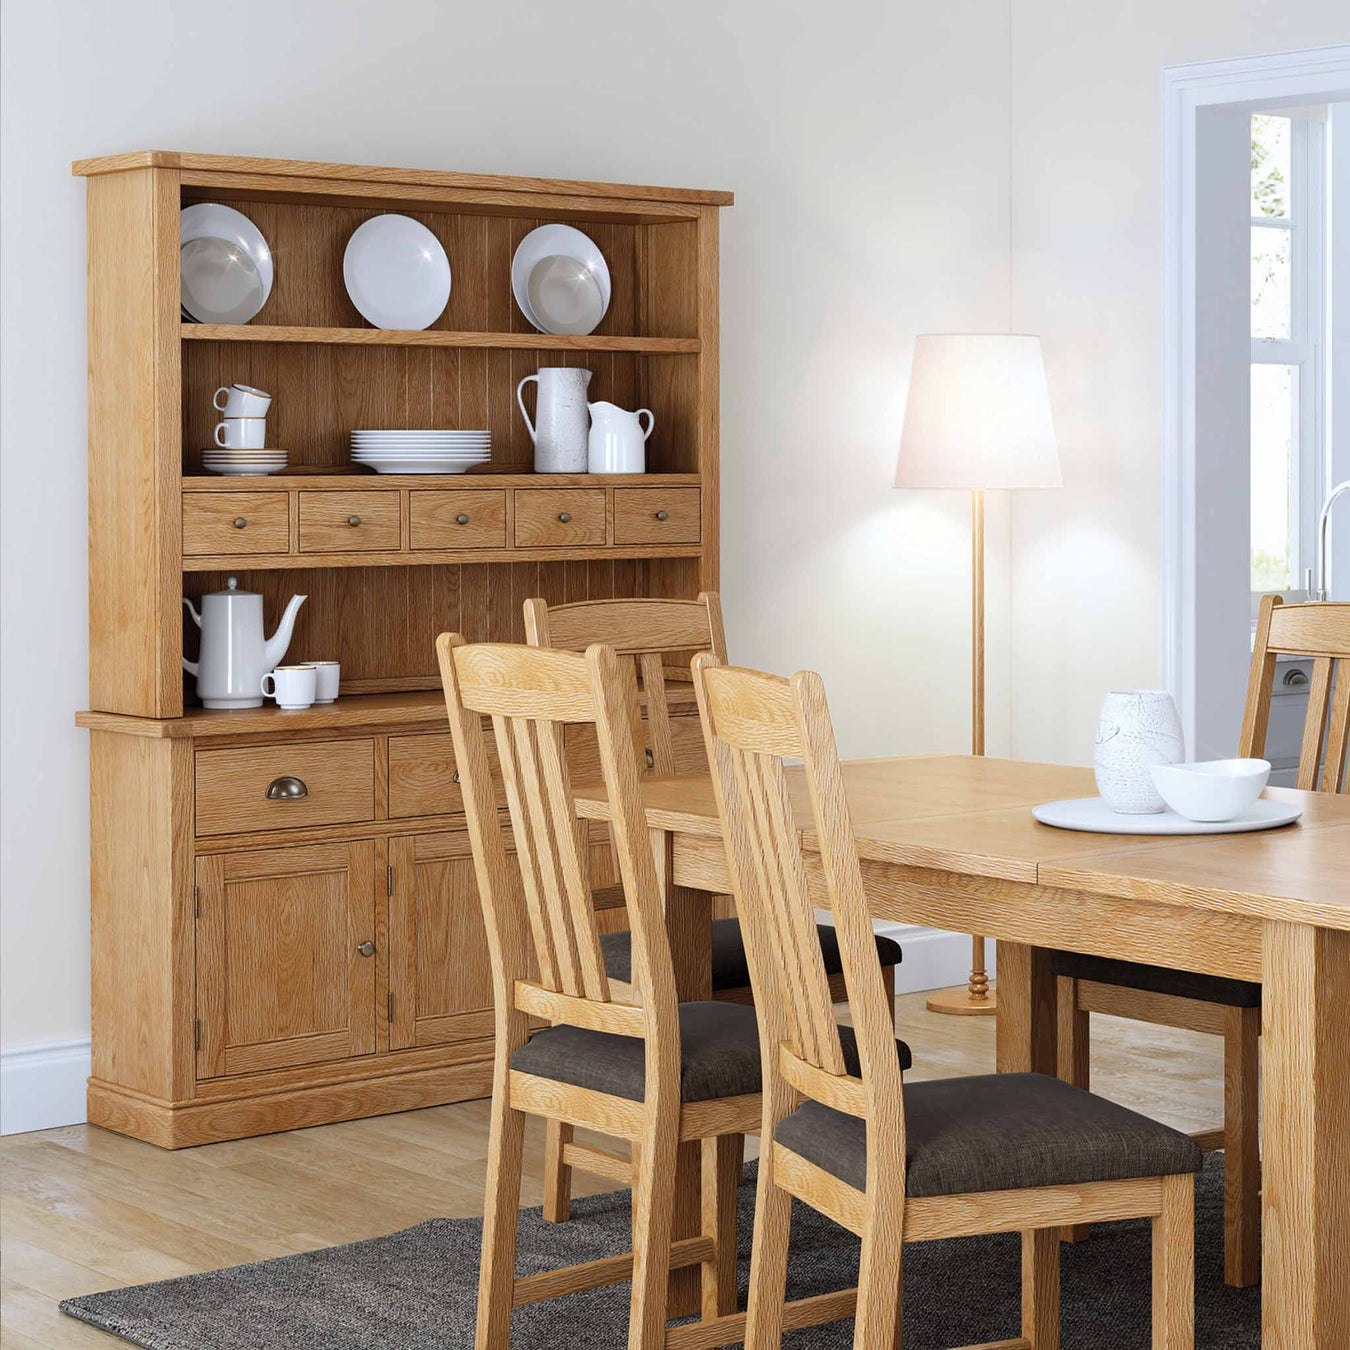 Oak & Painted Dressers